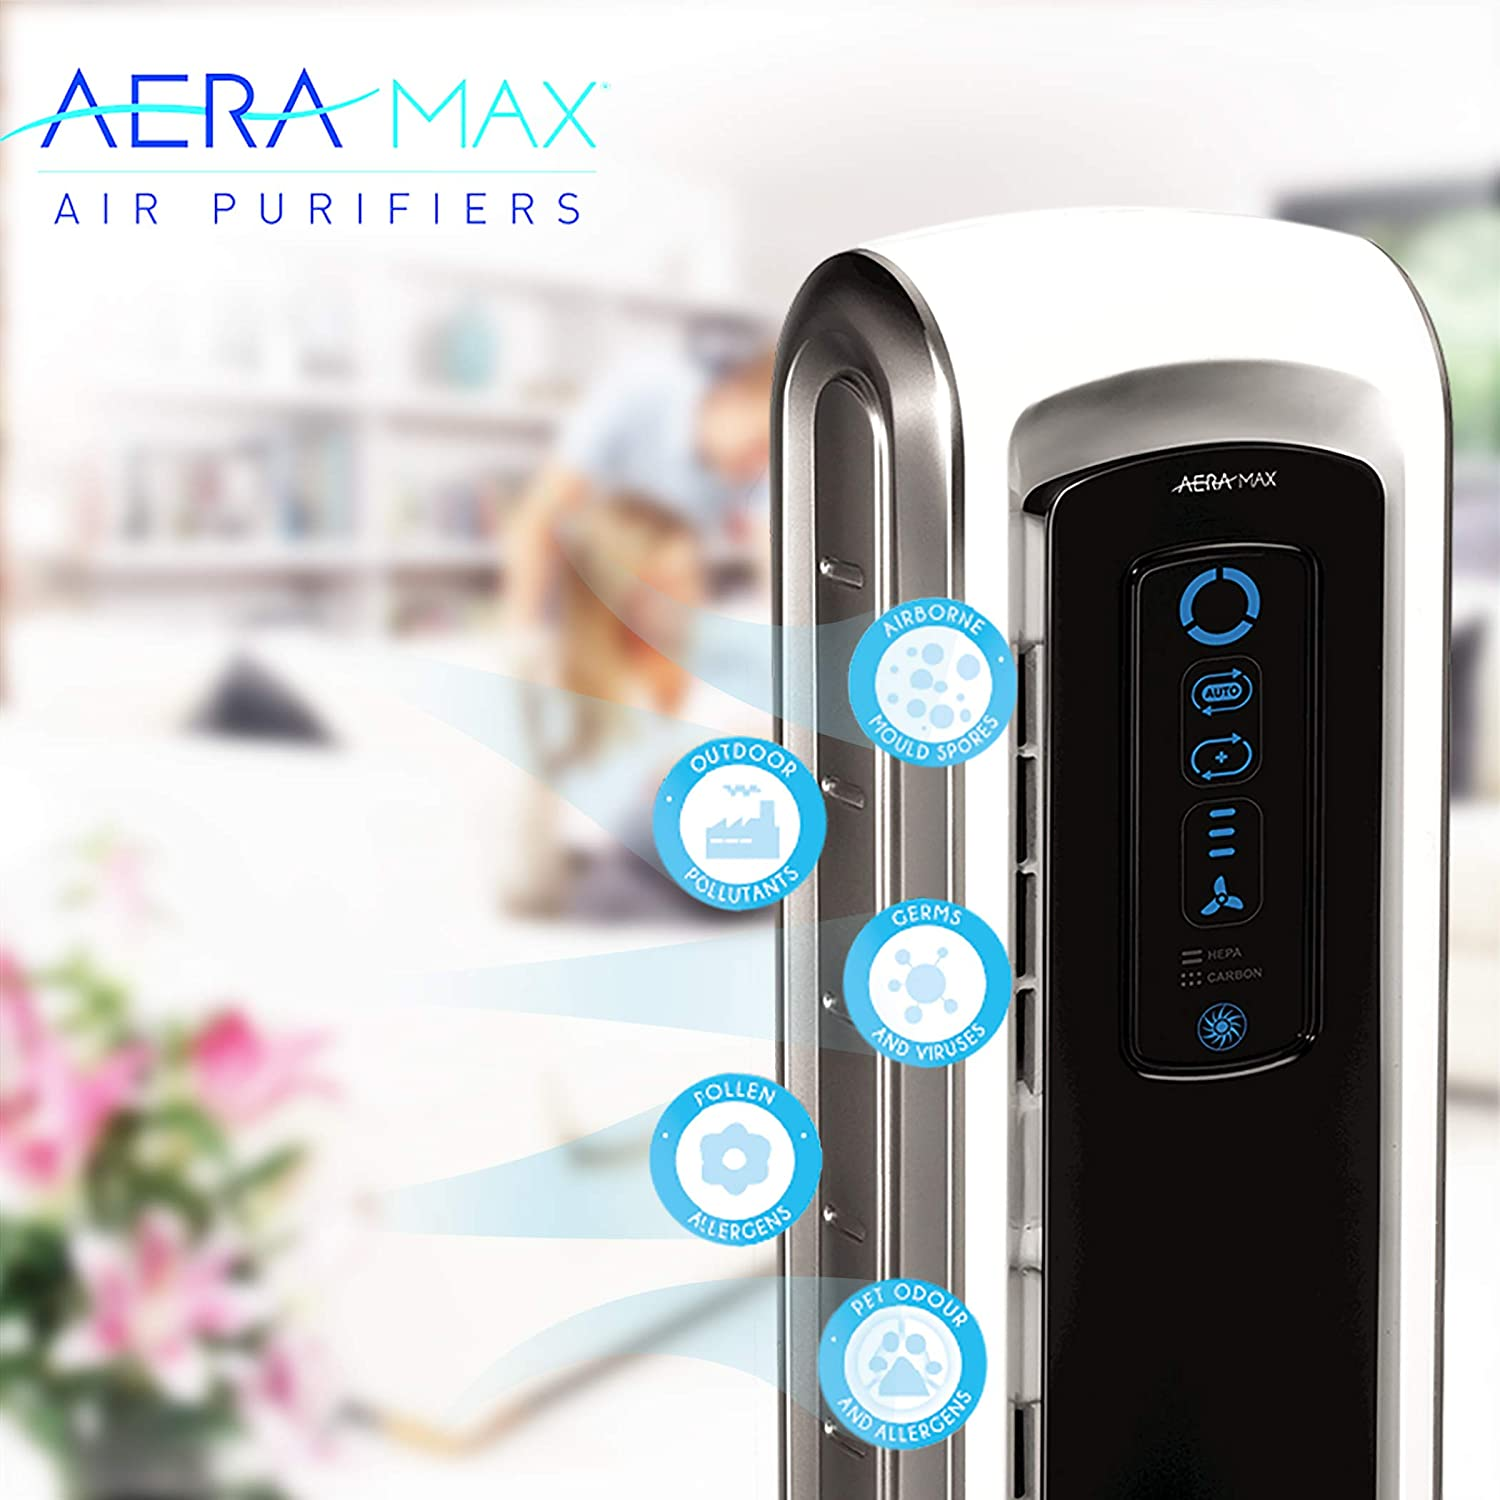 AeraMax 100 Home Air Purifier for Allergies and Asthma with 4-Stage Purification by Fellowes: Amazon.es: Hogar